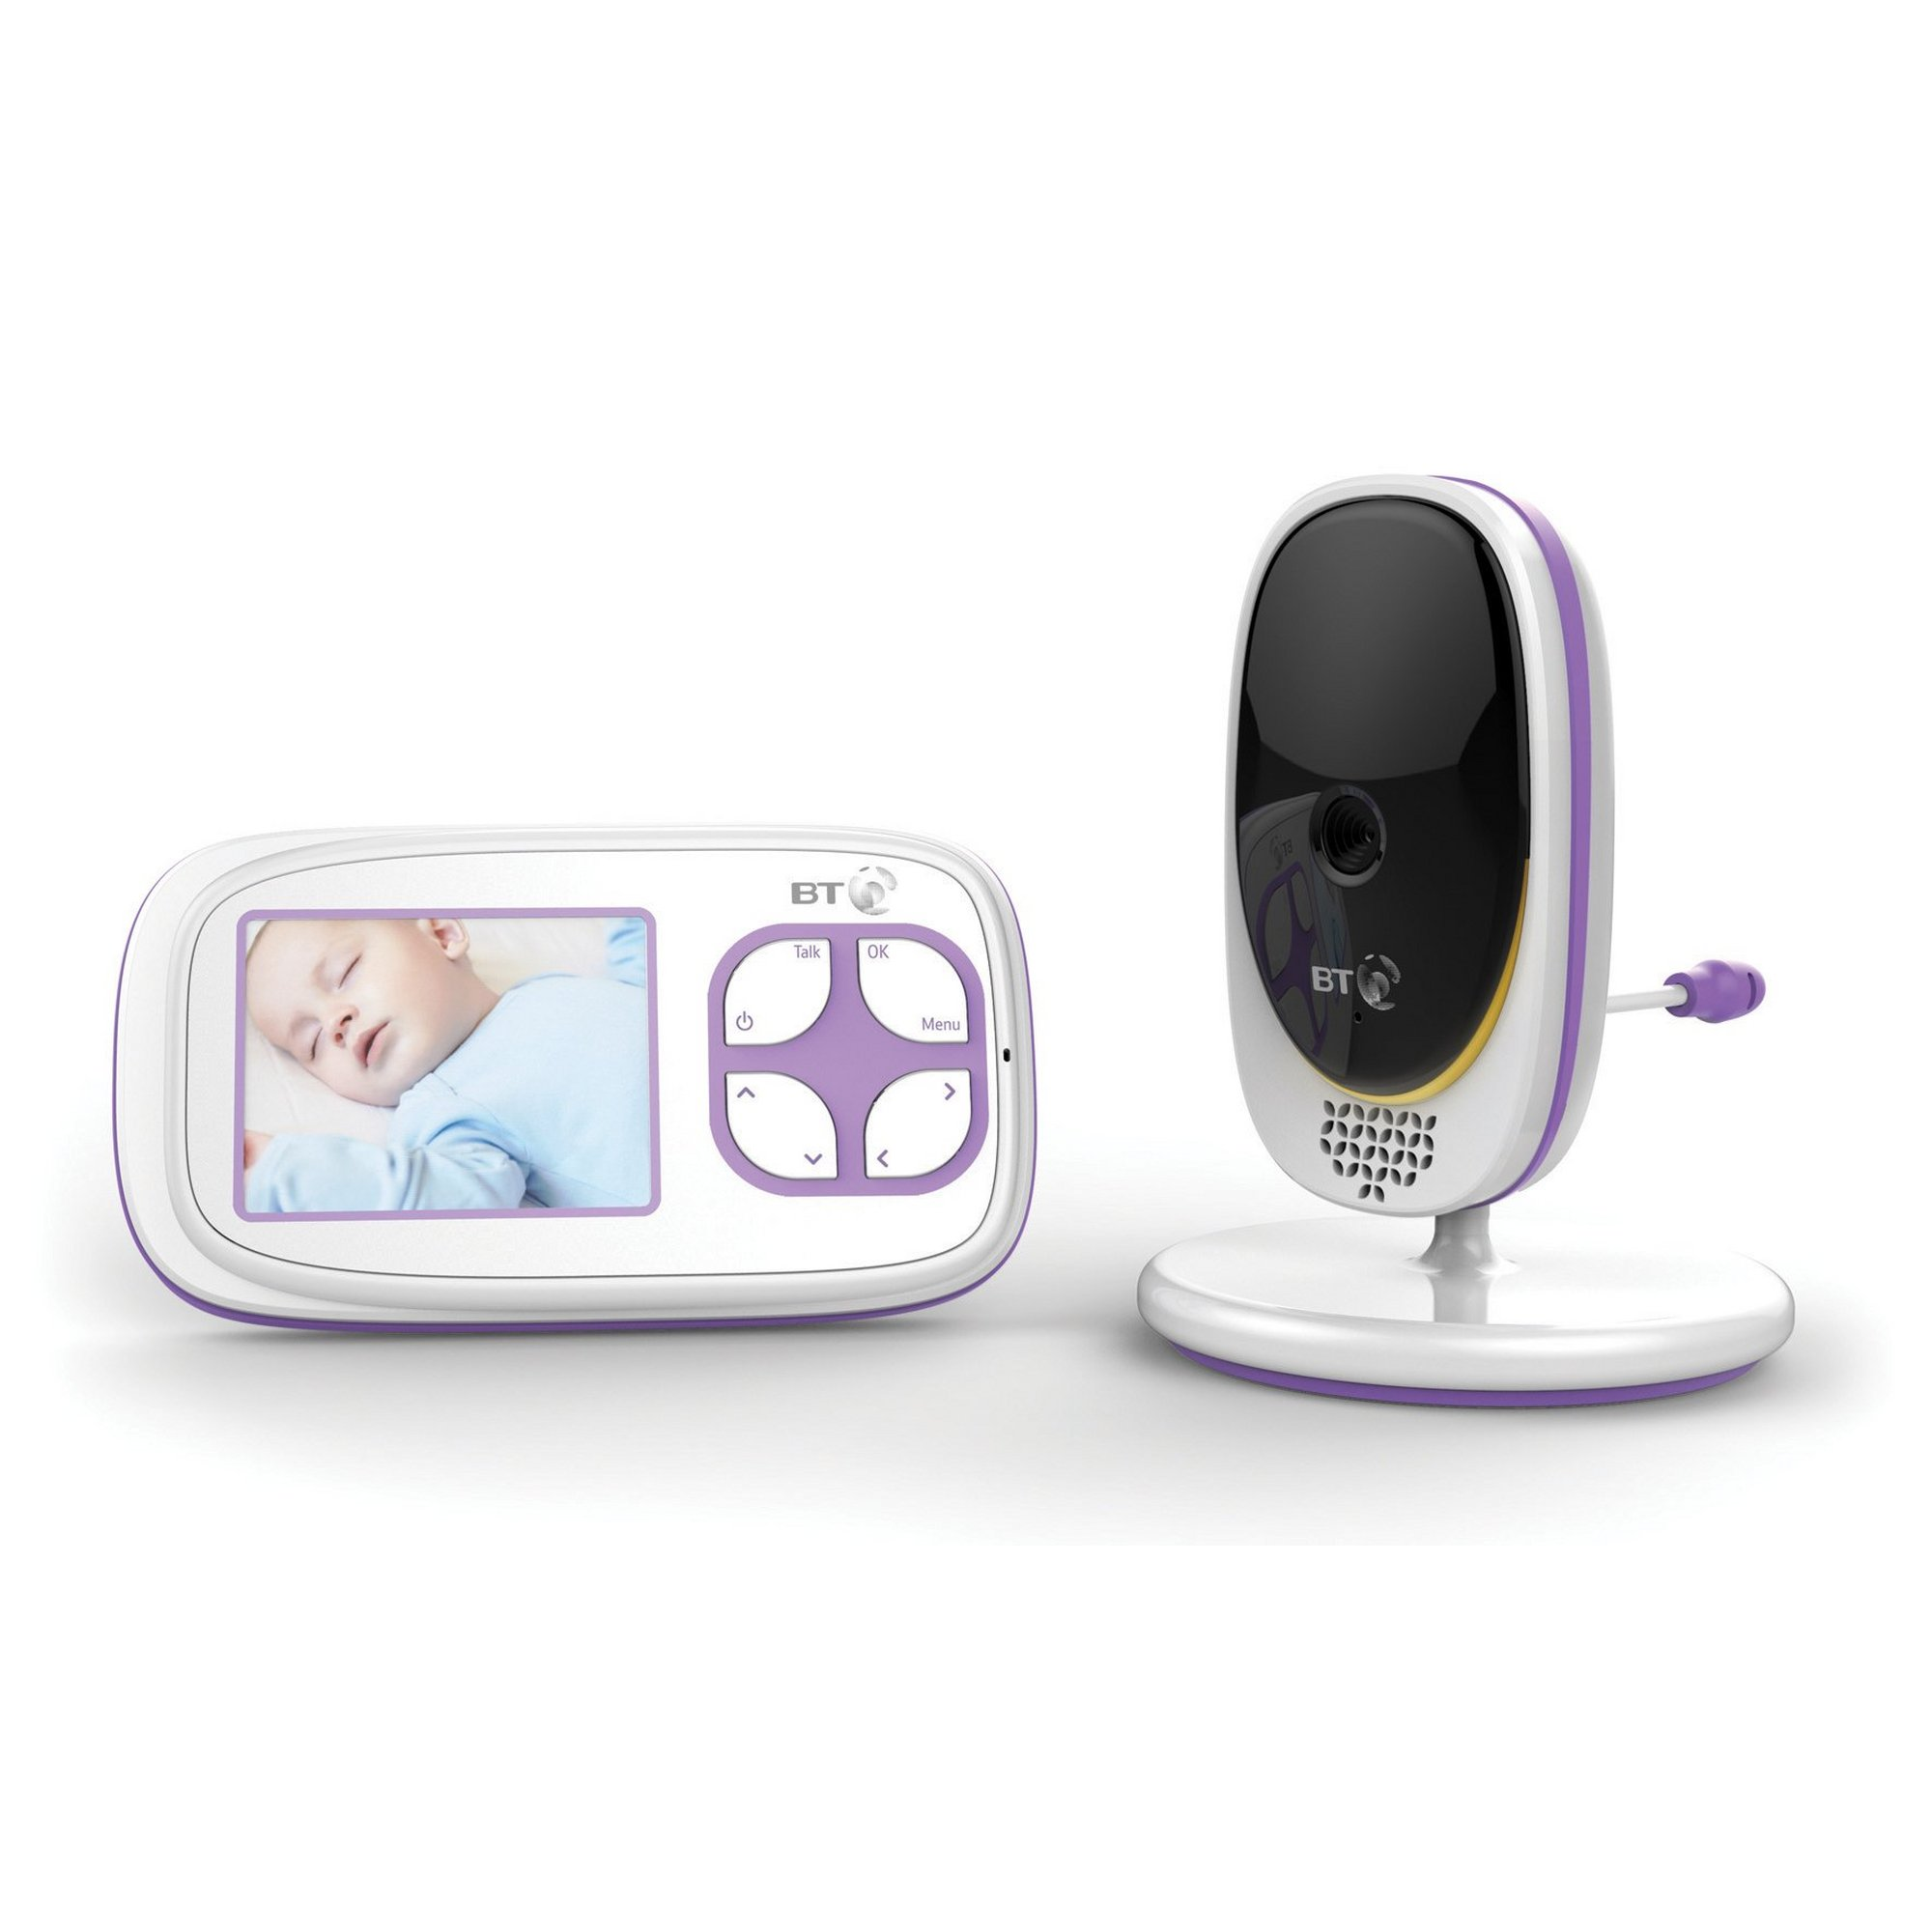 Image of BT Video Baby Monitor 3000